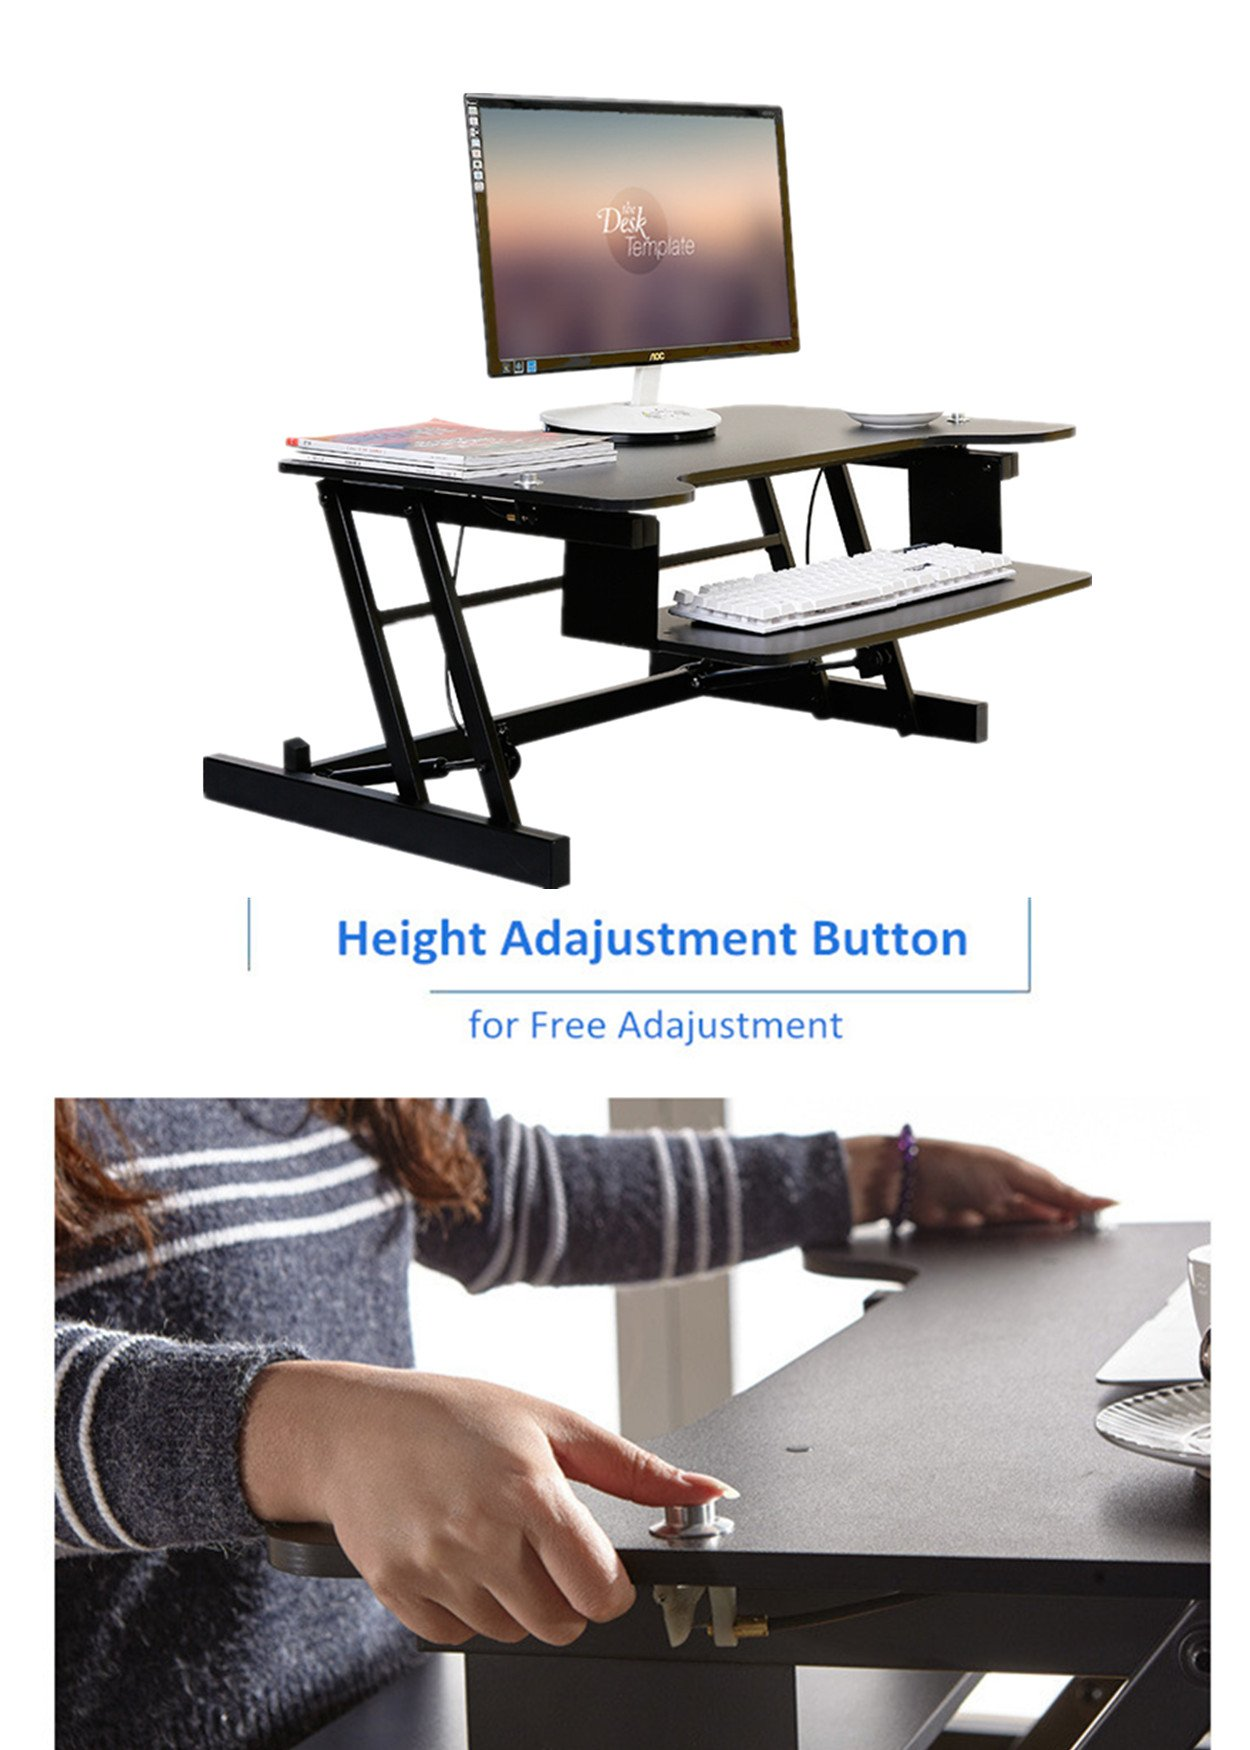 Mophorn Height Adjustable Standing Desk 2 Dual Monitors 31 Inch Wide Sit Stand Desk Riser 88Lbs Capacity Stand Up Desk Converter with Dedicated Keyboard Tray Elevating Desktop Riser Black by Mophorn (Image #1)